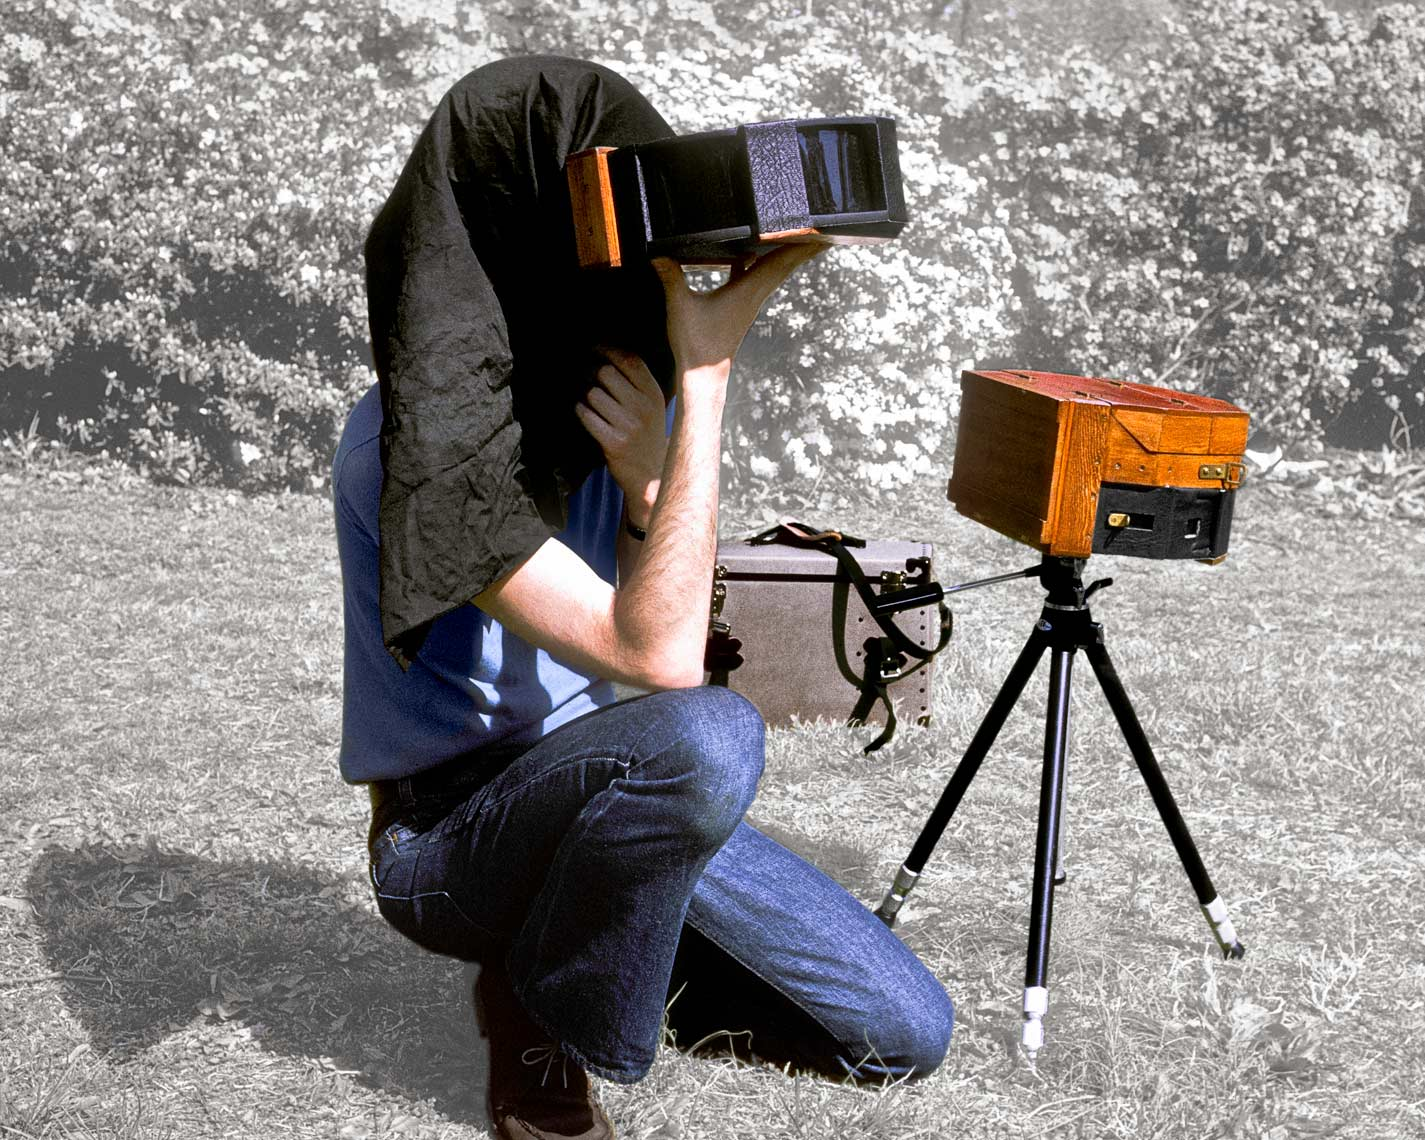 David Lebe using his pinhole viewfinder for 4 apature pinhole camerea, 1974